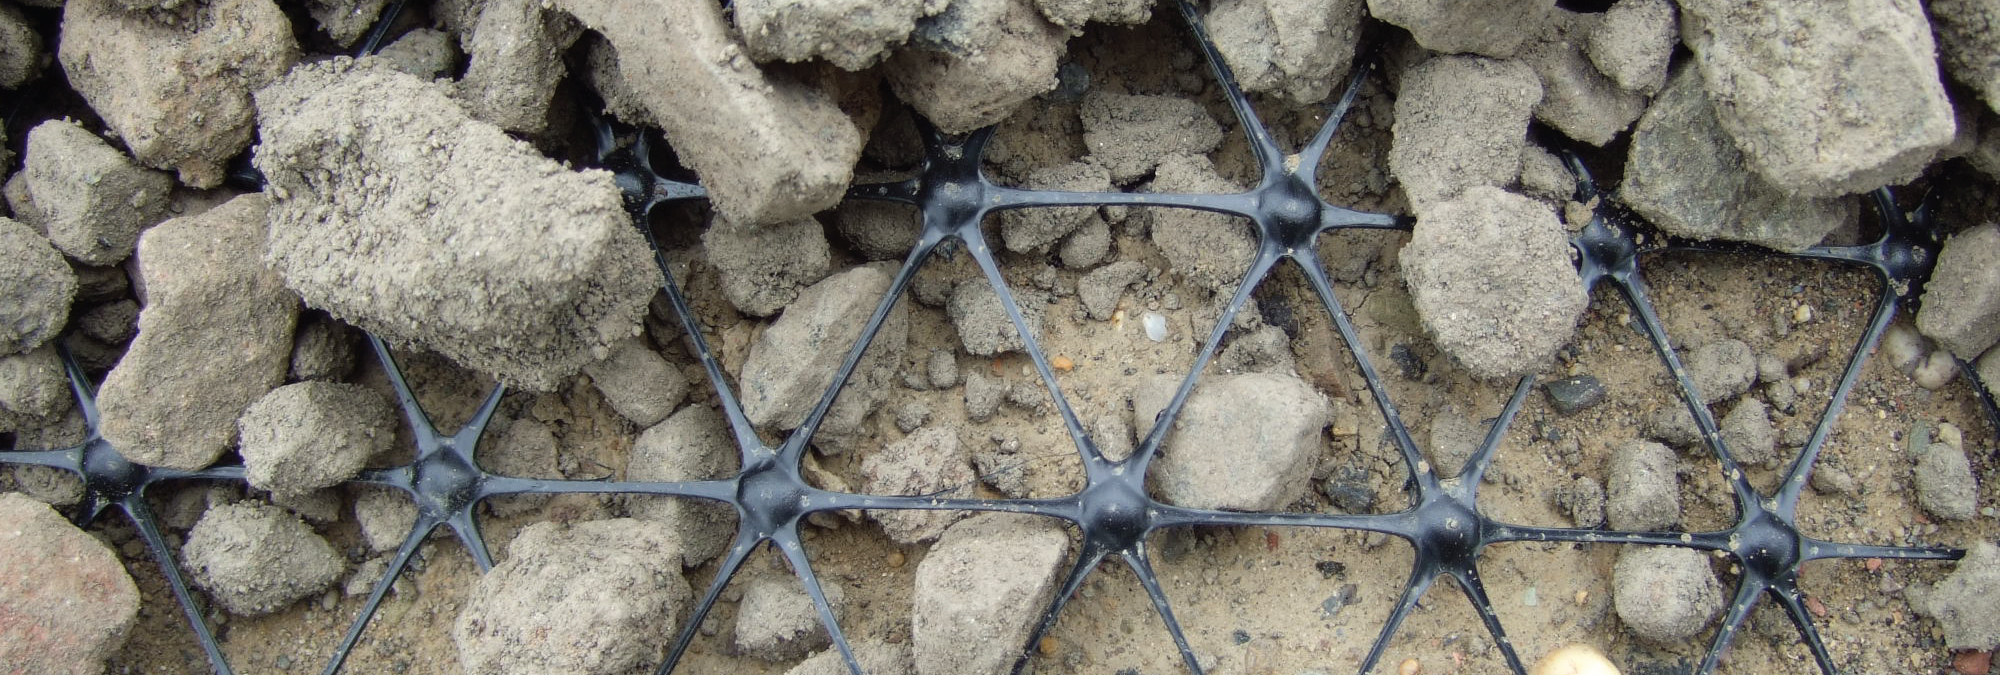 Tensar-Laying-the-Groundwork-for-Tomorrow-TriAx-Geogrid-Contest